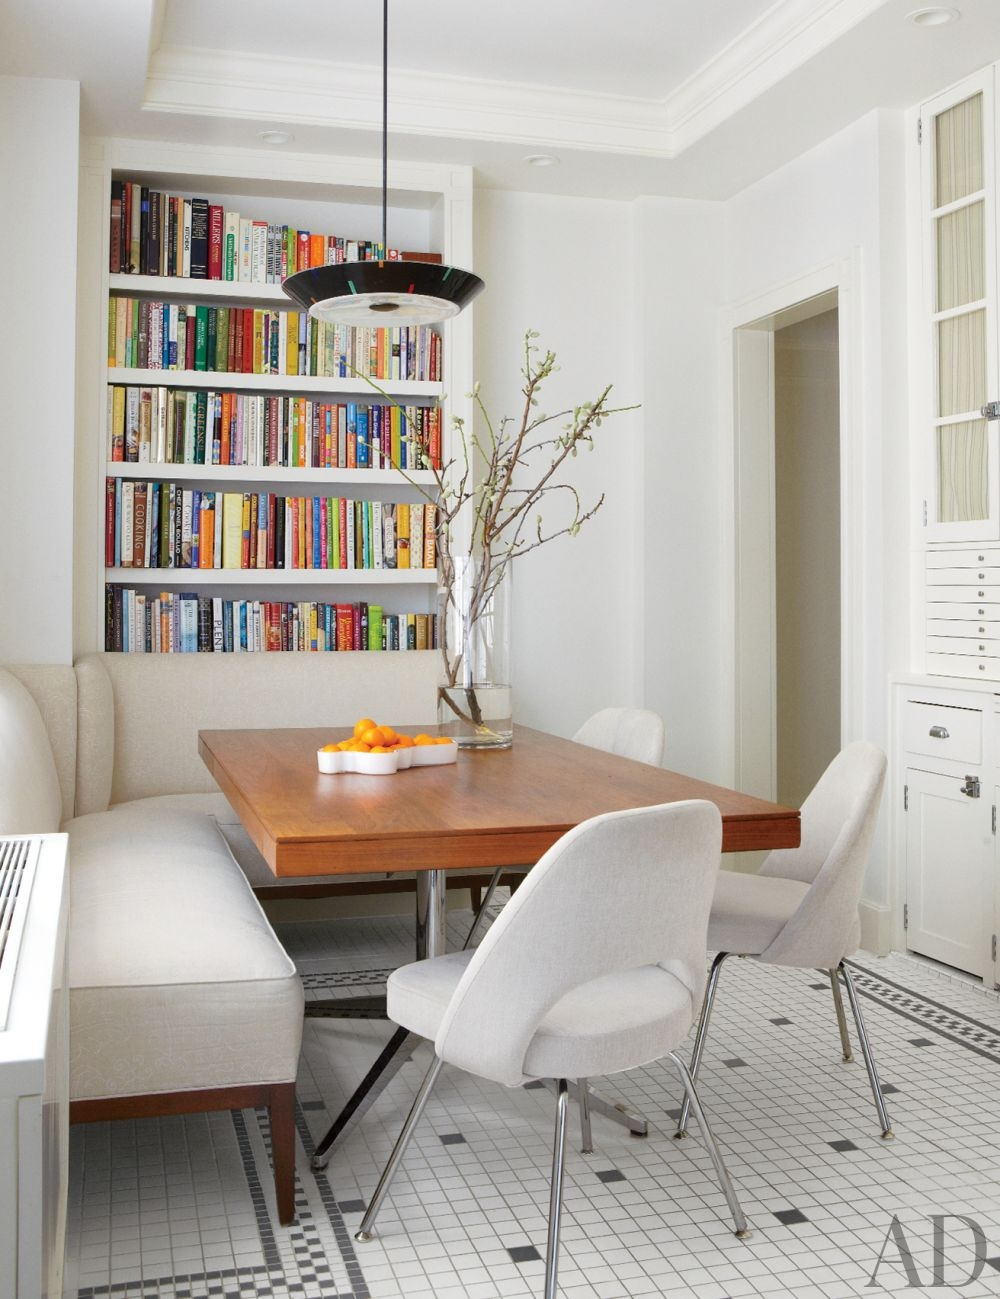 Interior Design Tips to Make the Most of Your Small Dining Room 8